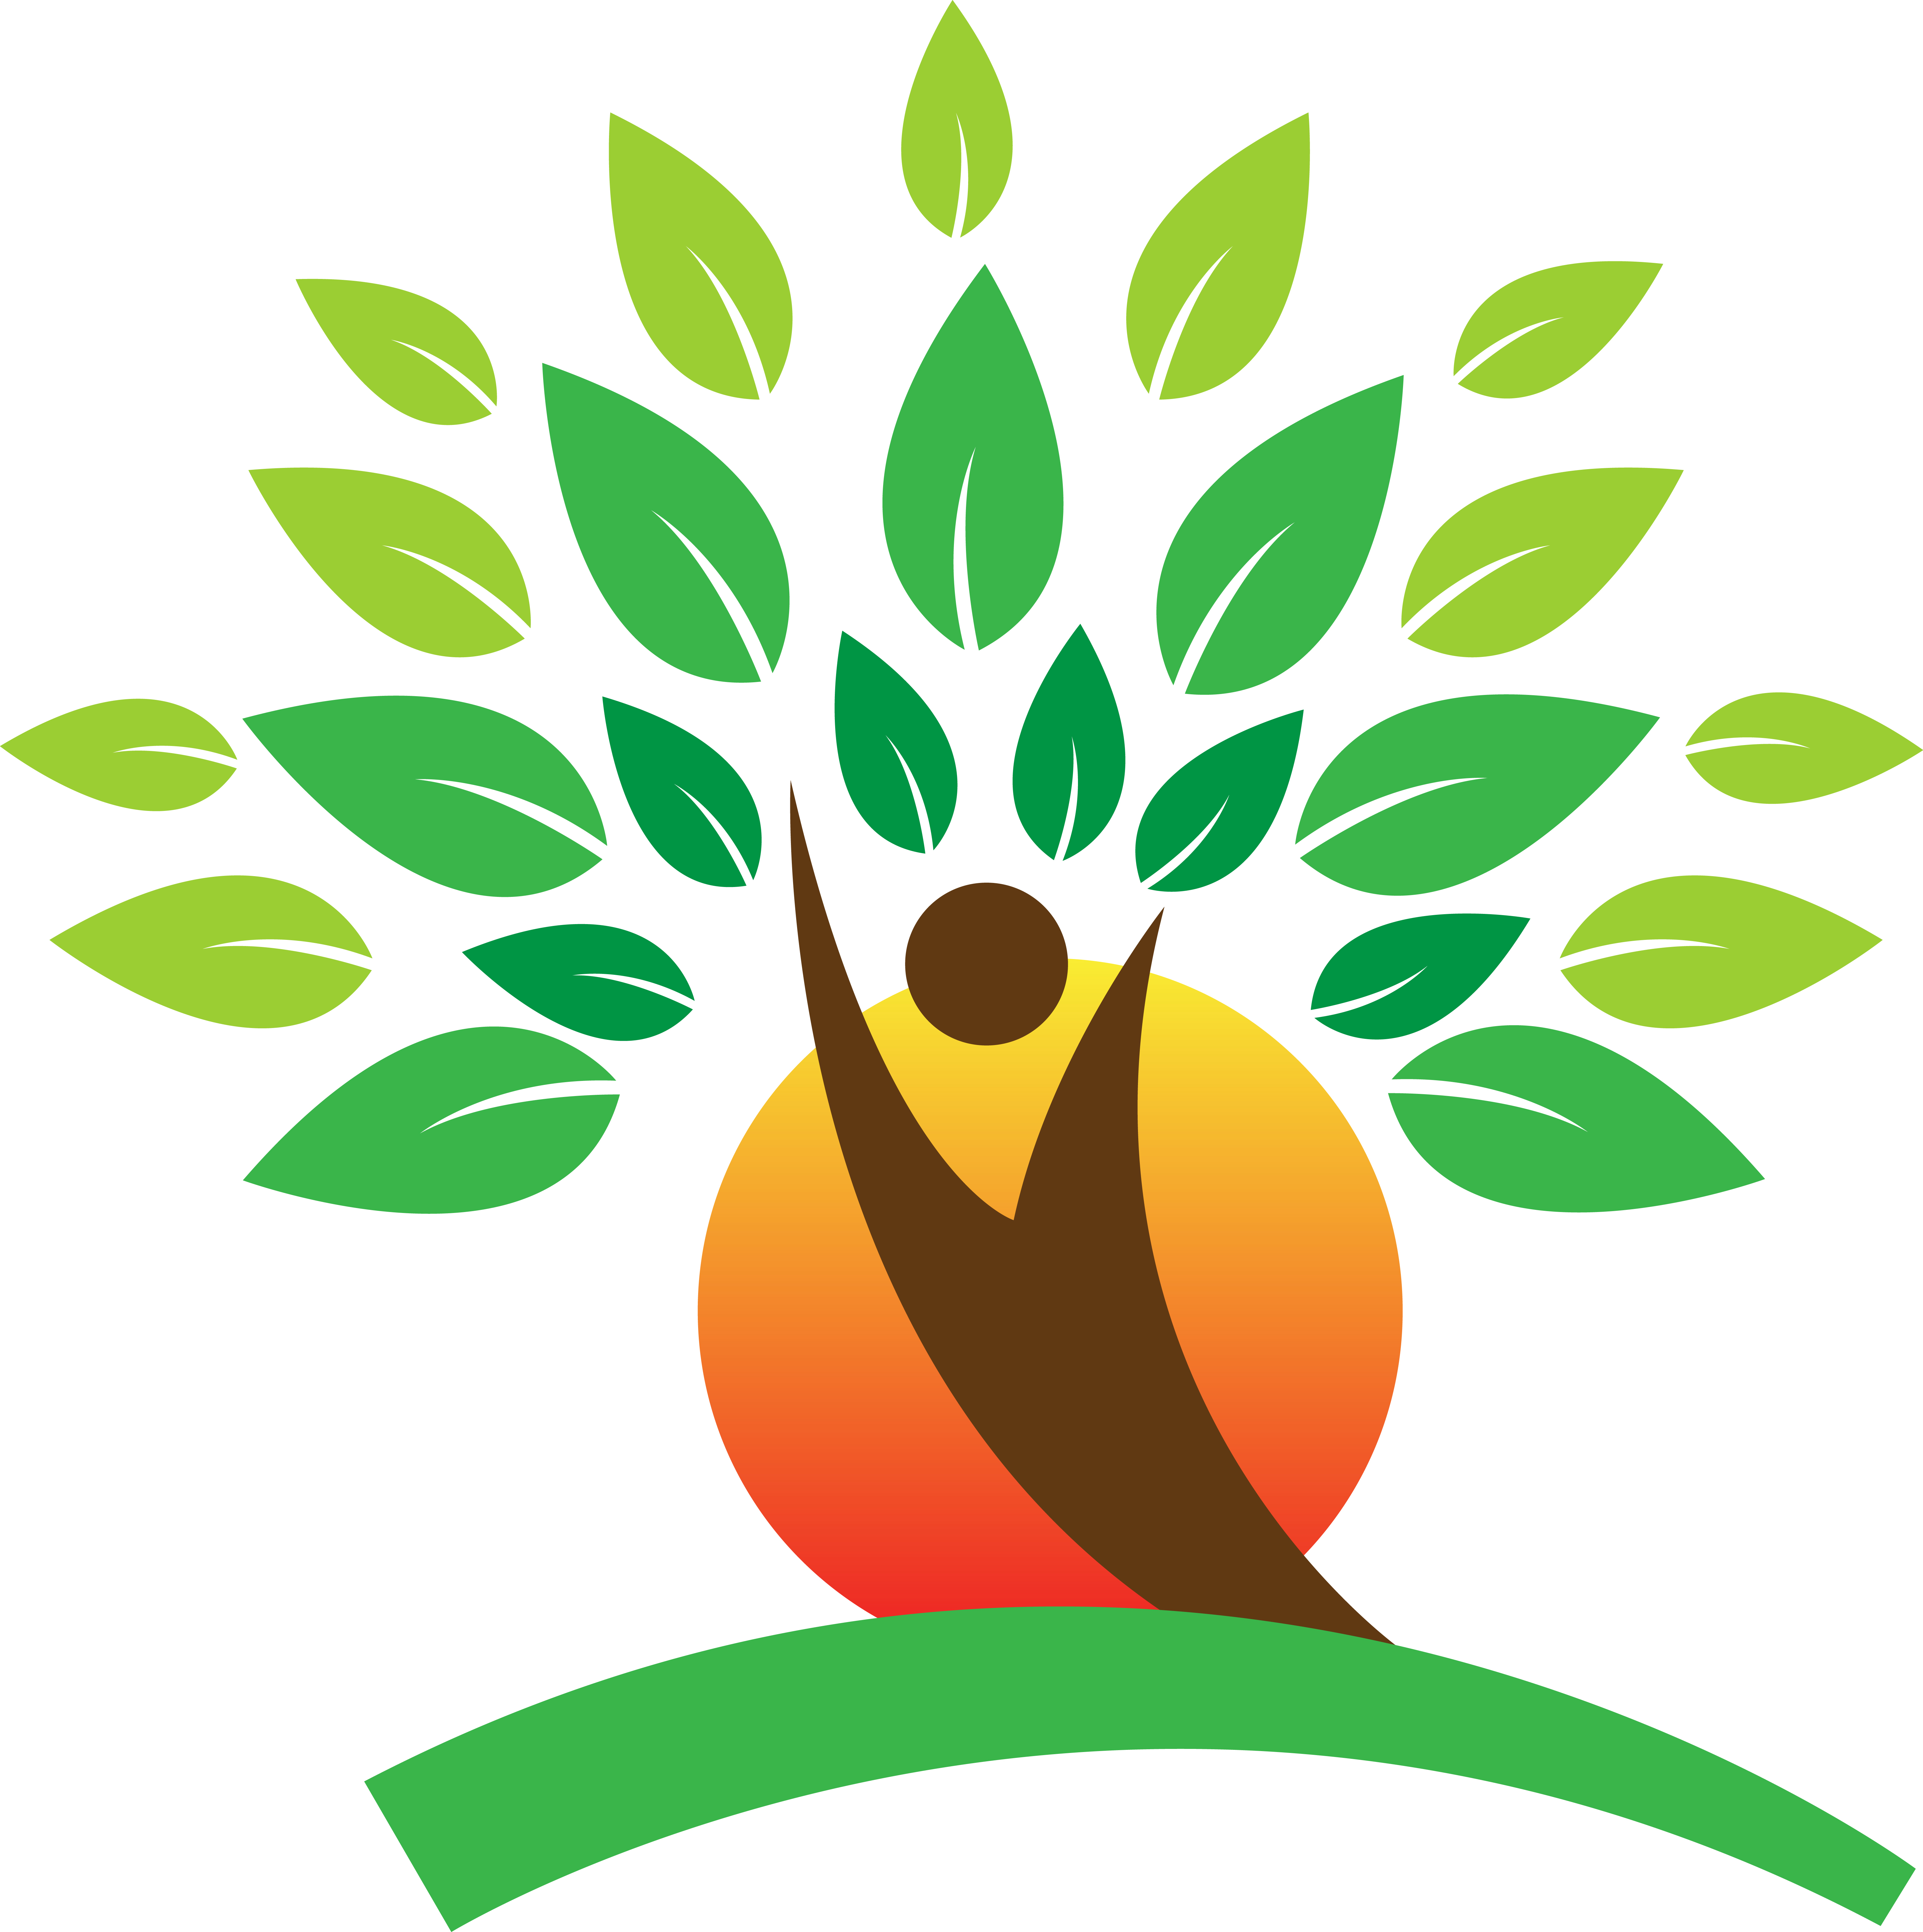 Tree logo - A vector drawing, represents tree logo design, Copyright Colorscurves <br />at Dreamstime.com-ID33038431